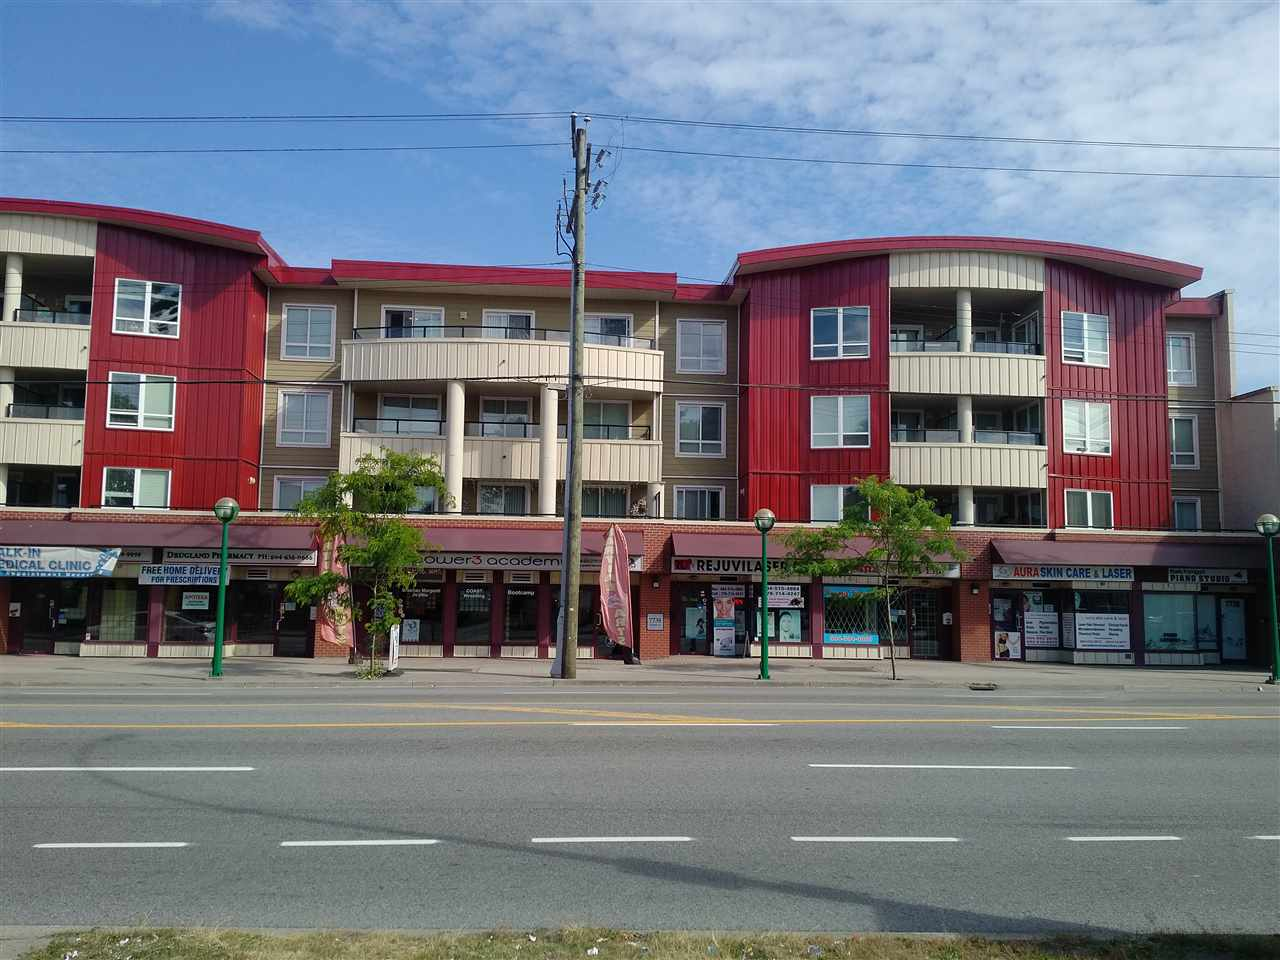 Condo Apartment at PH10 7738 EDMONDS STREET, Unit PH10, Burnaby East, British Columbia. Image 1